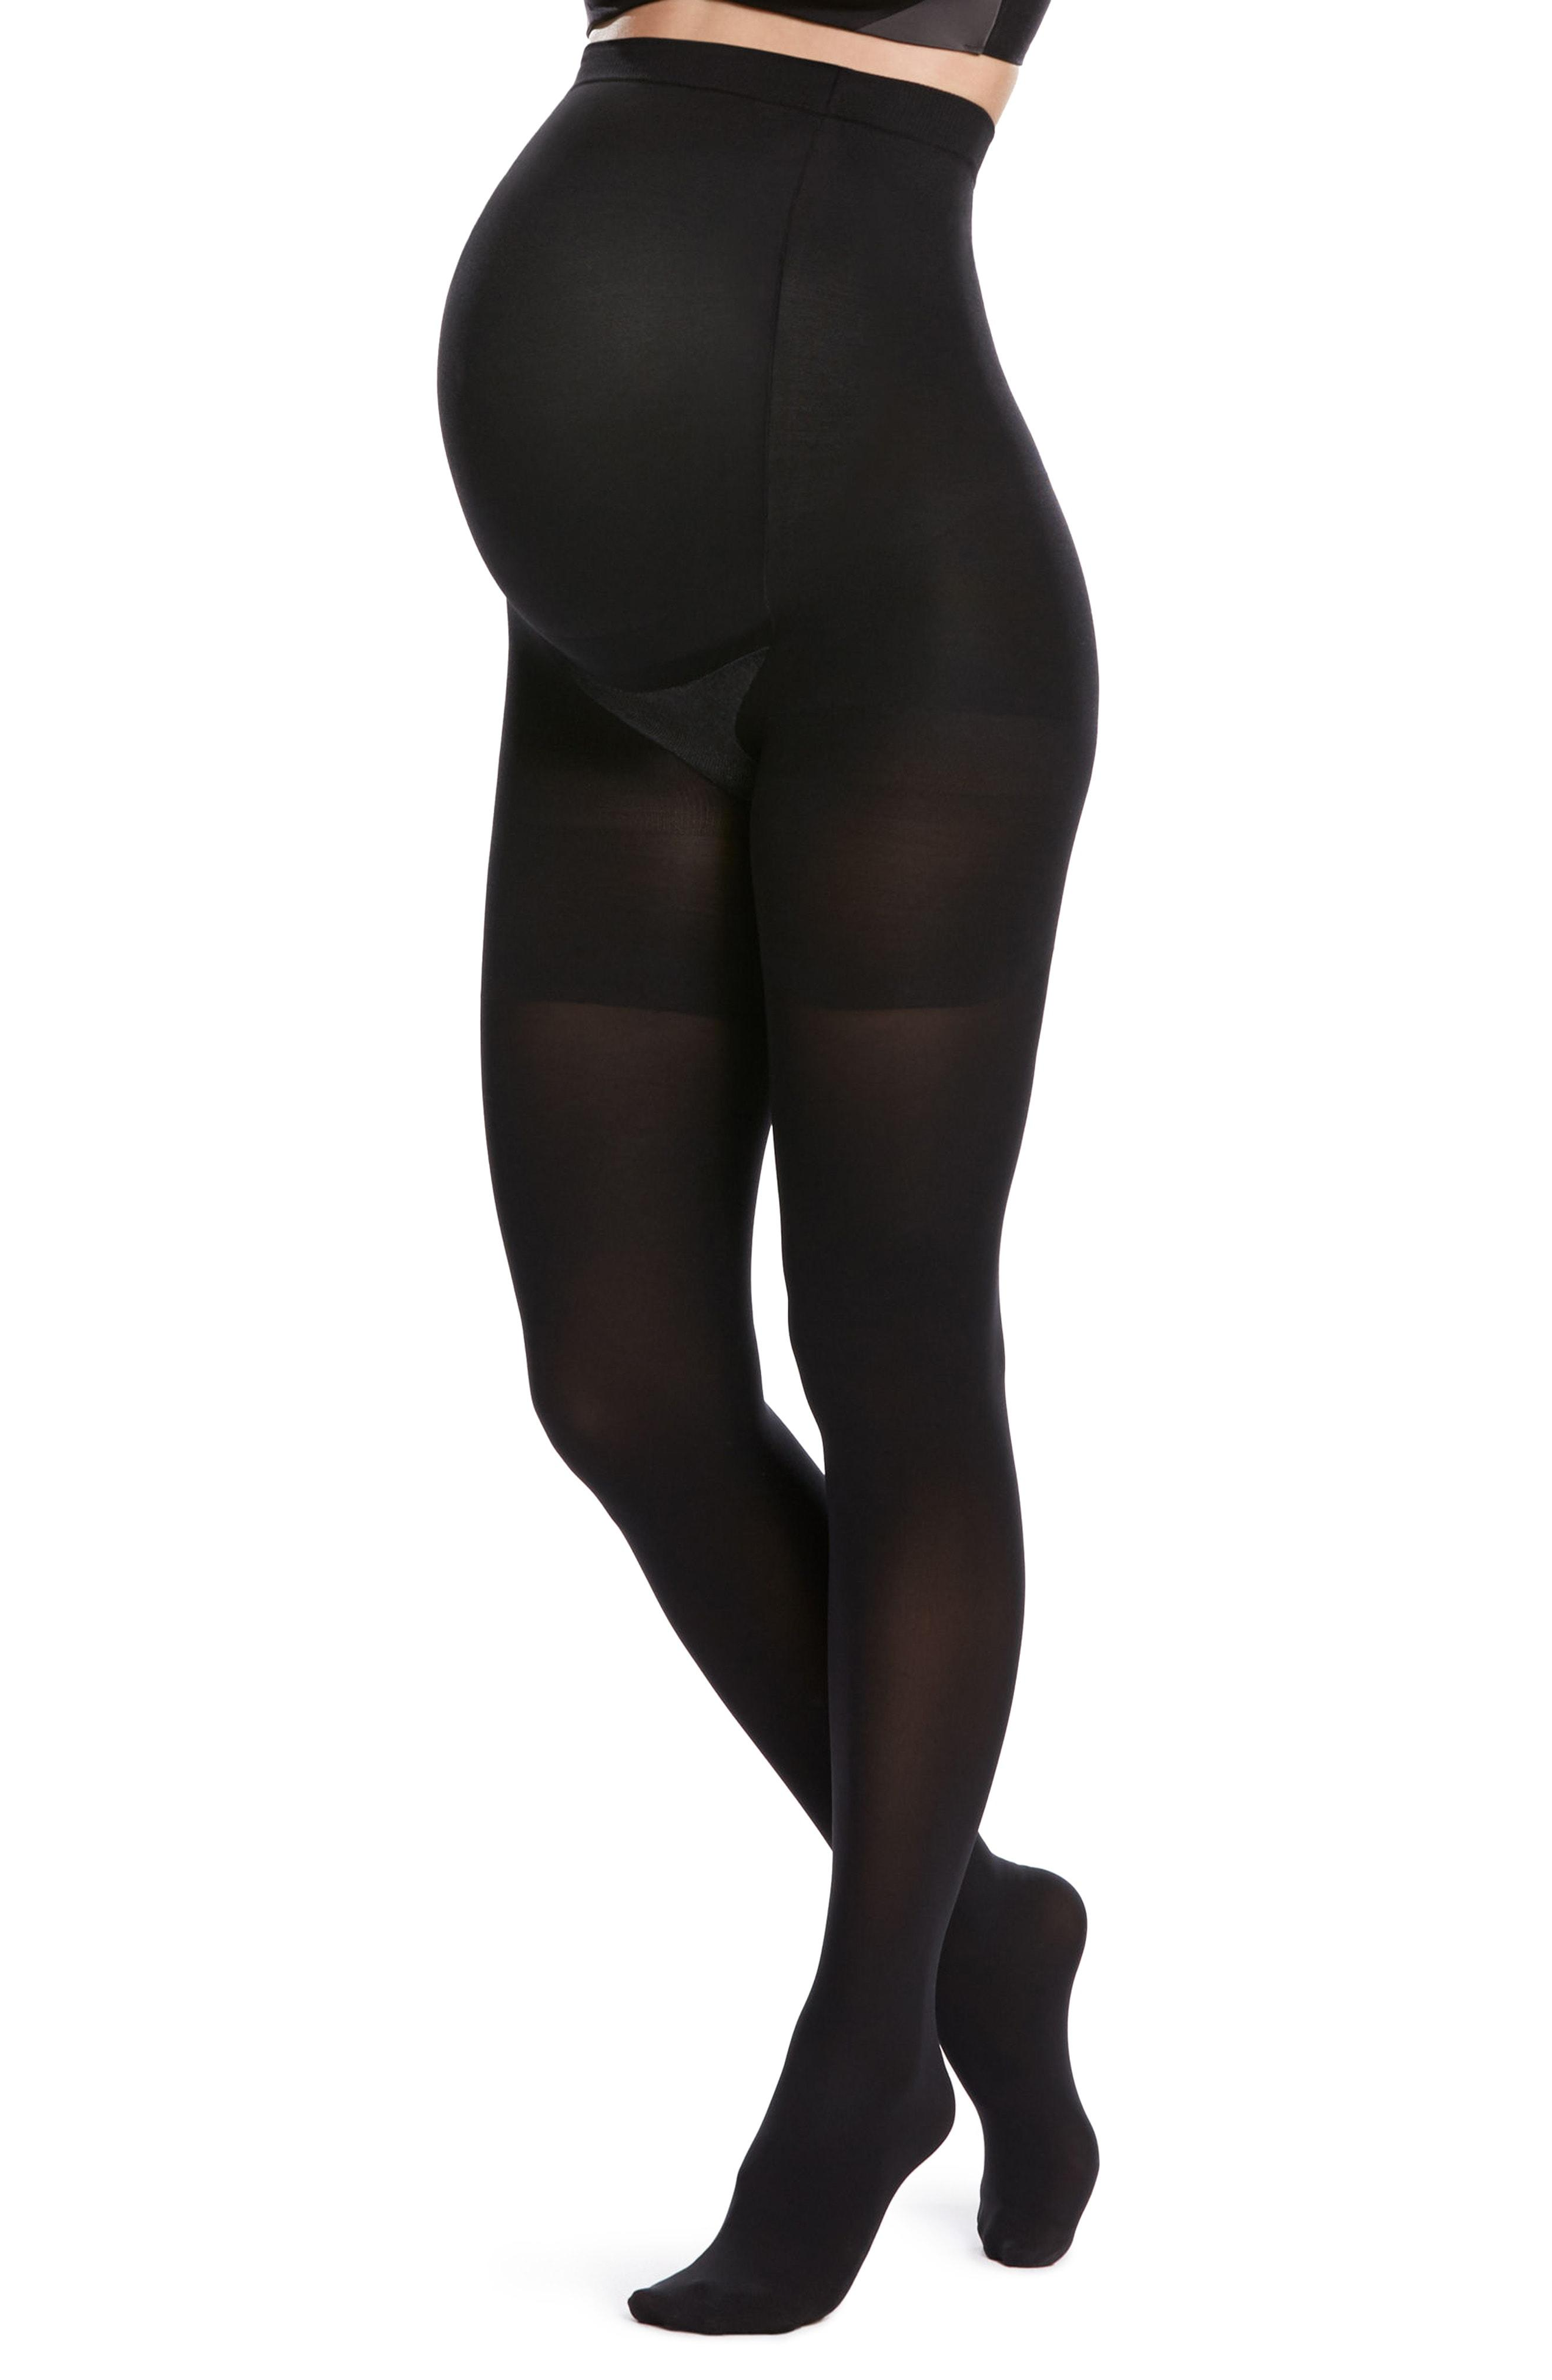 bc4e06bf56b Lyst - Spanx Spanx Mama Mid-thigh Shaping Tights in Black